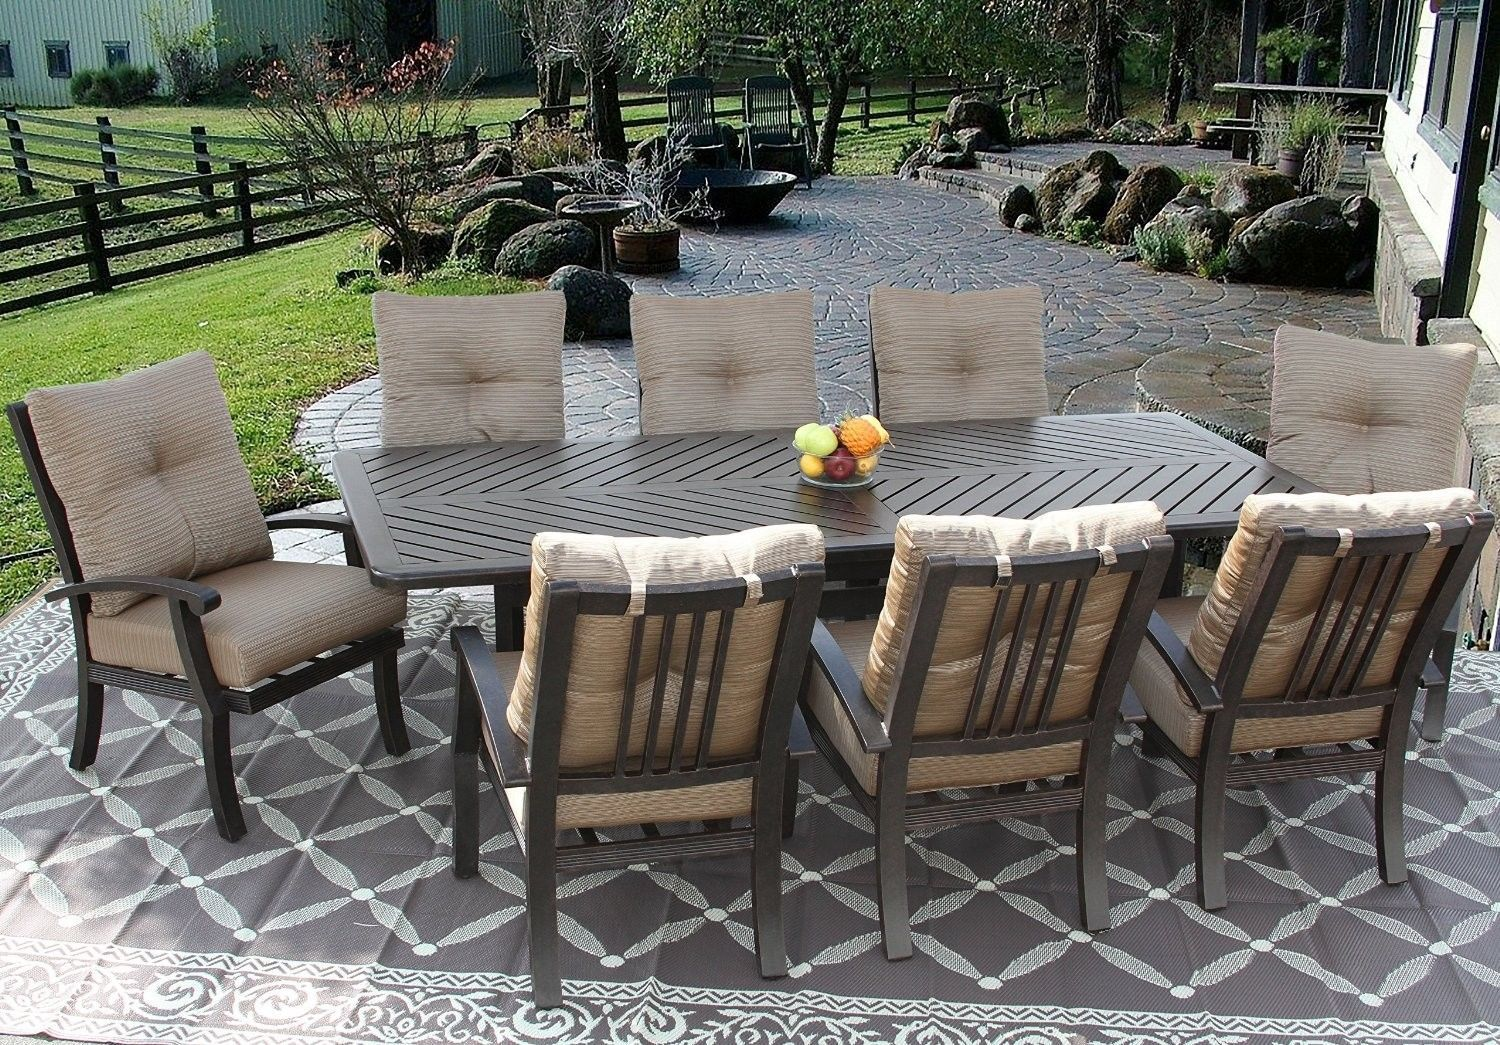 PATIO 9PC DINING SET FOR 8 PERSON WITH 44X86 RECTANGLE SERIES 4000 TABLE